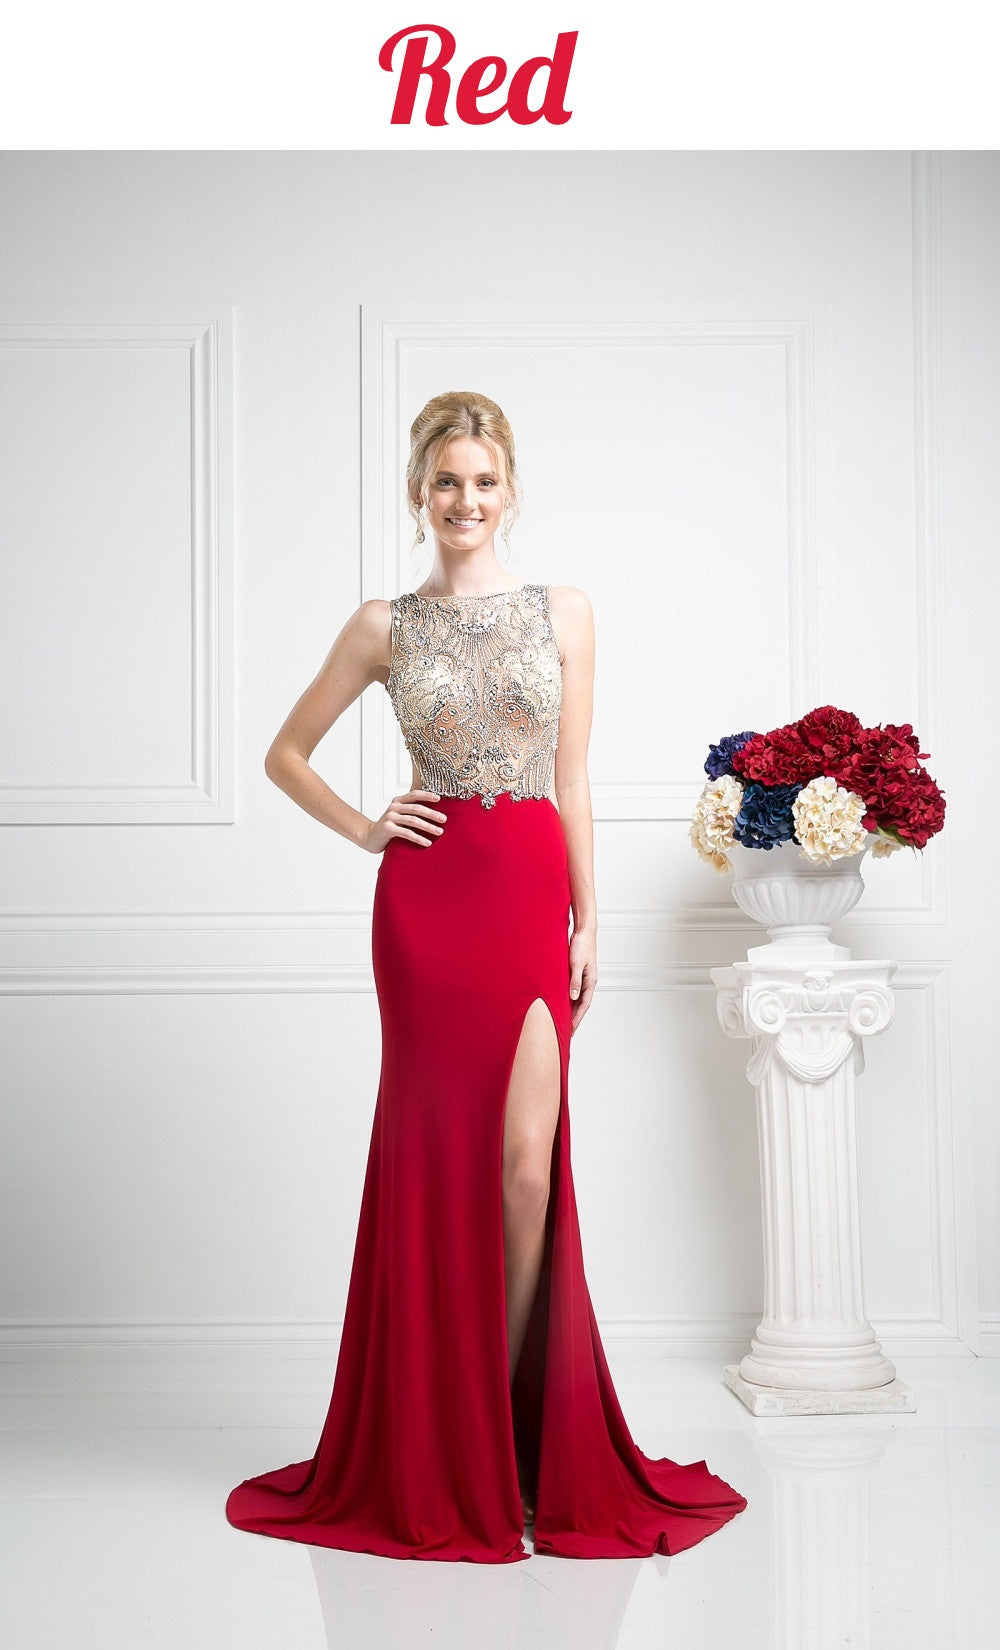 Show Stopper Open Back Illusion Red Evening Dress High Slit